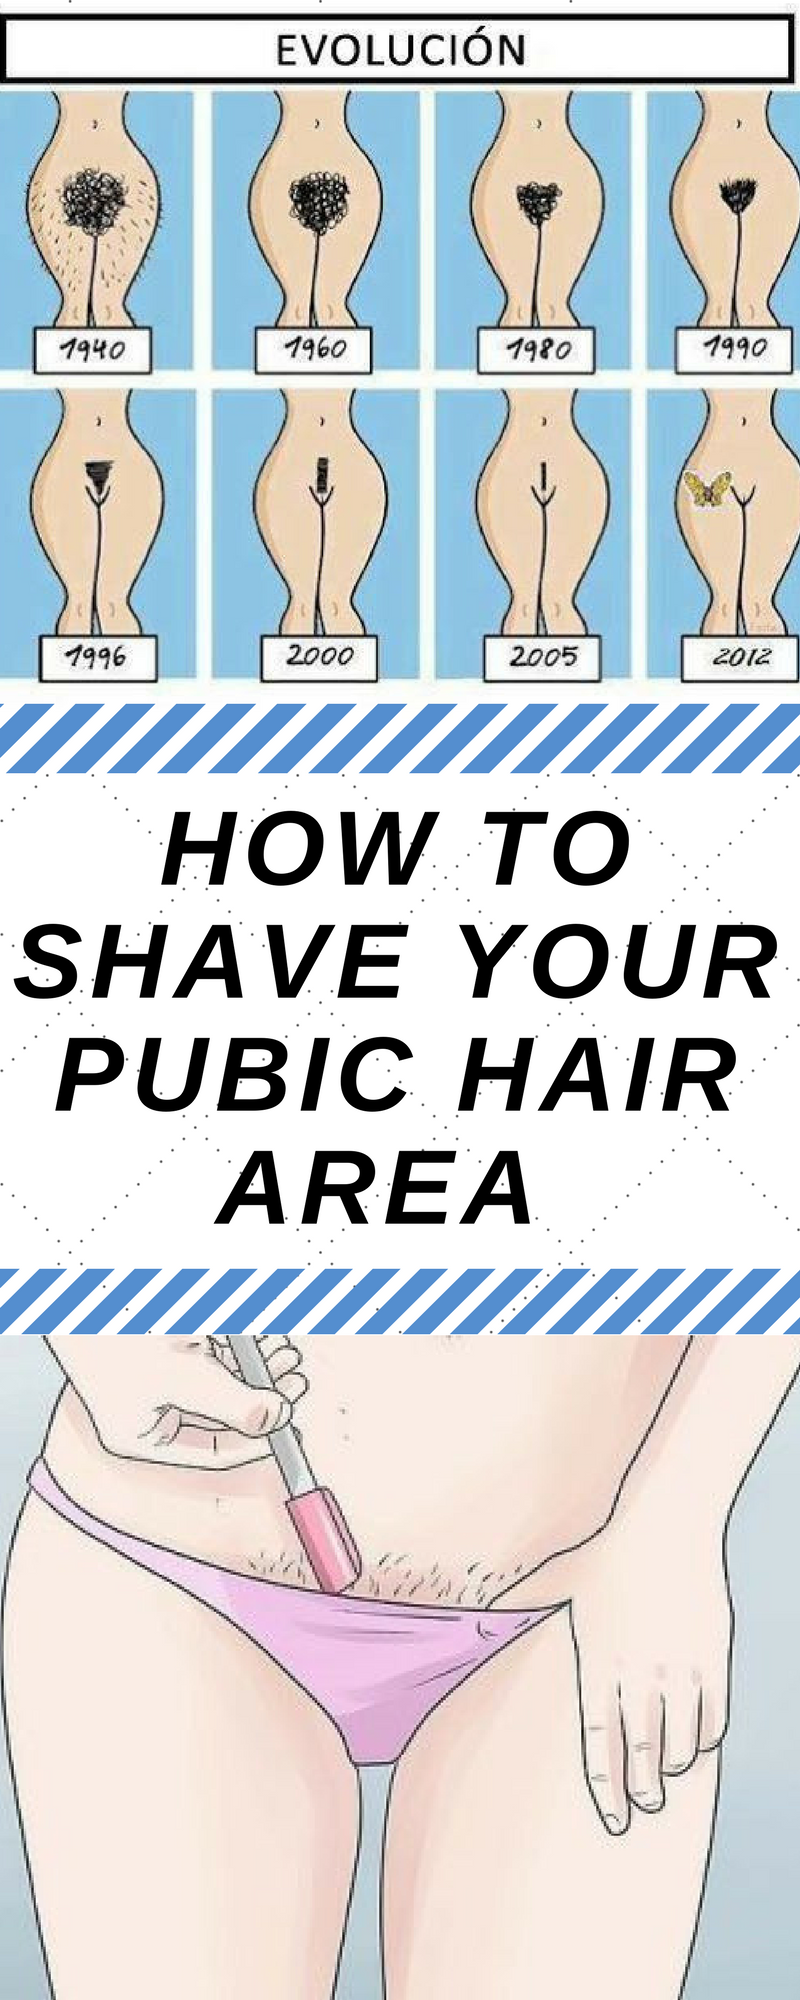 How to shave your pubic hair for women